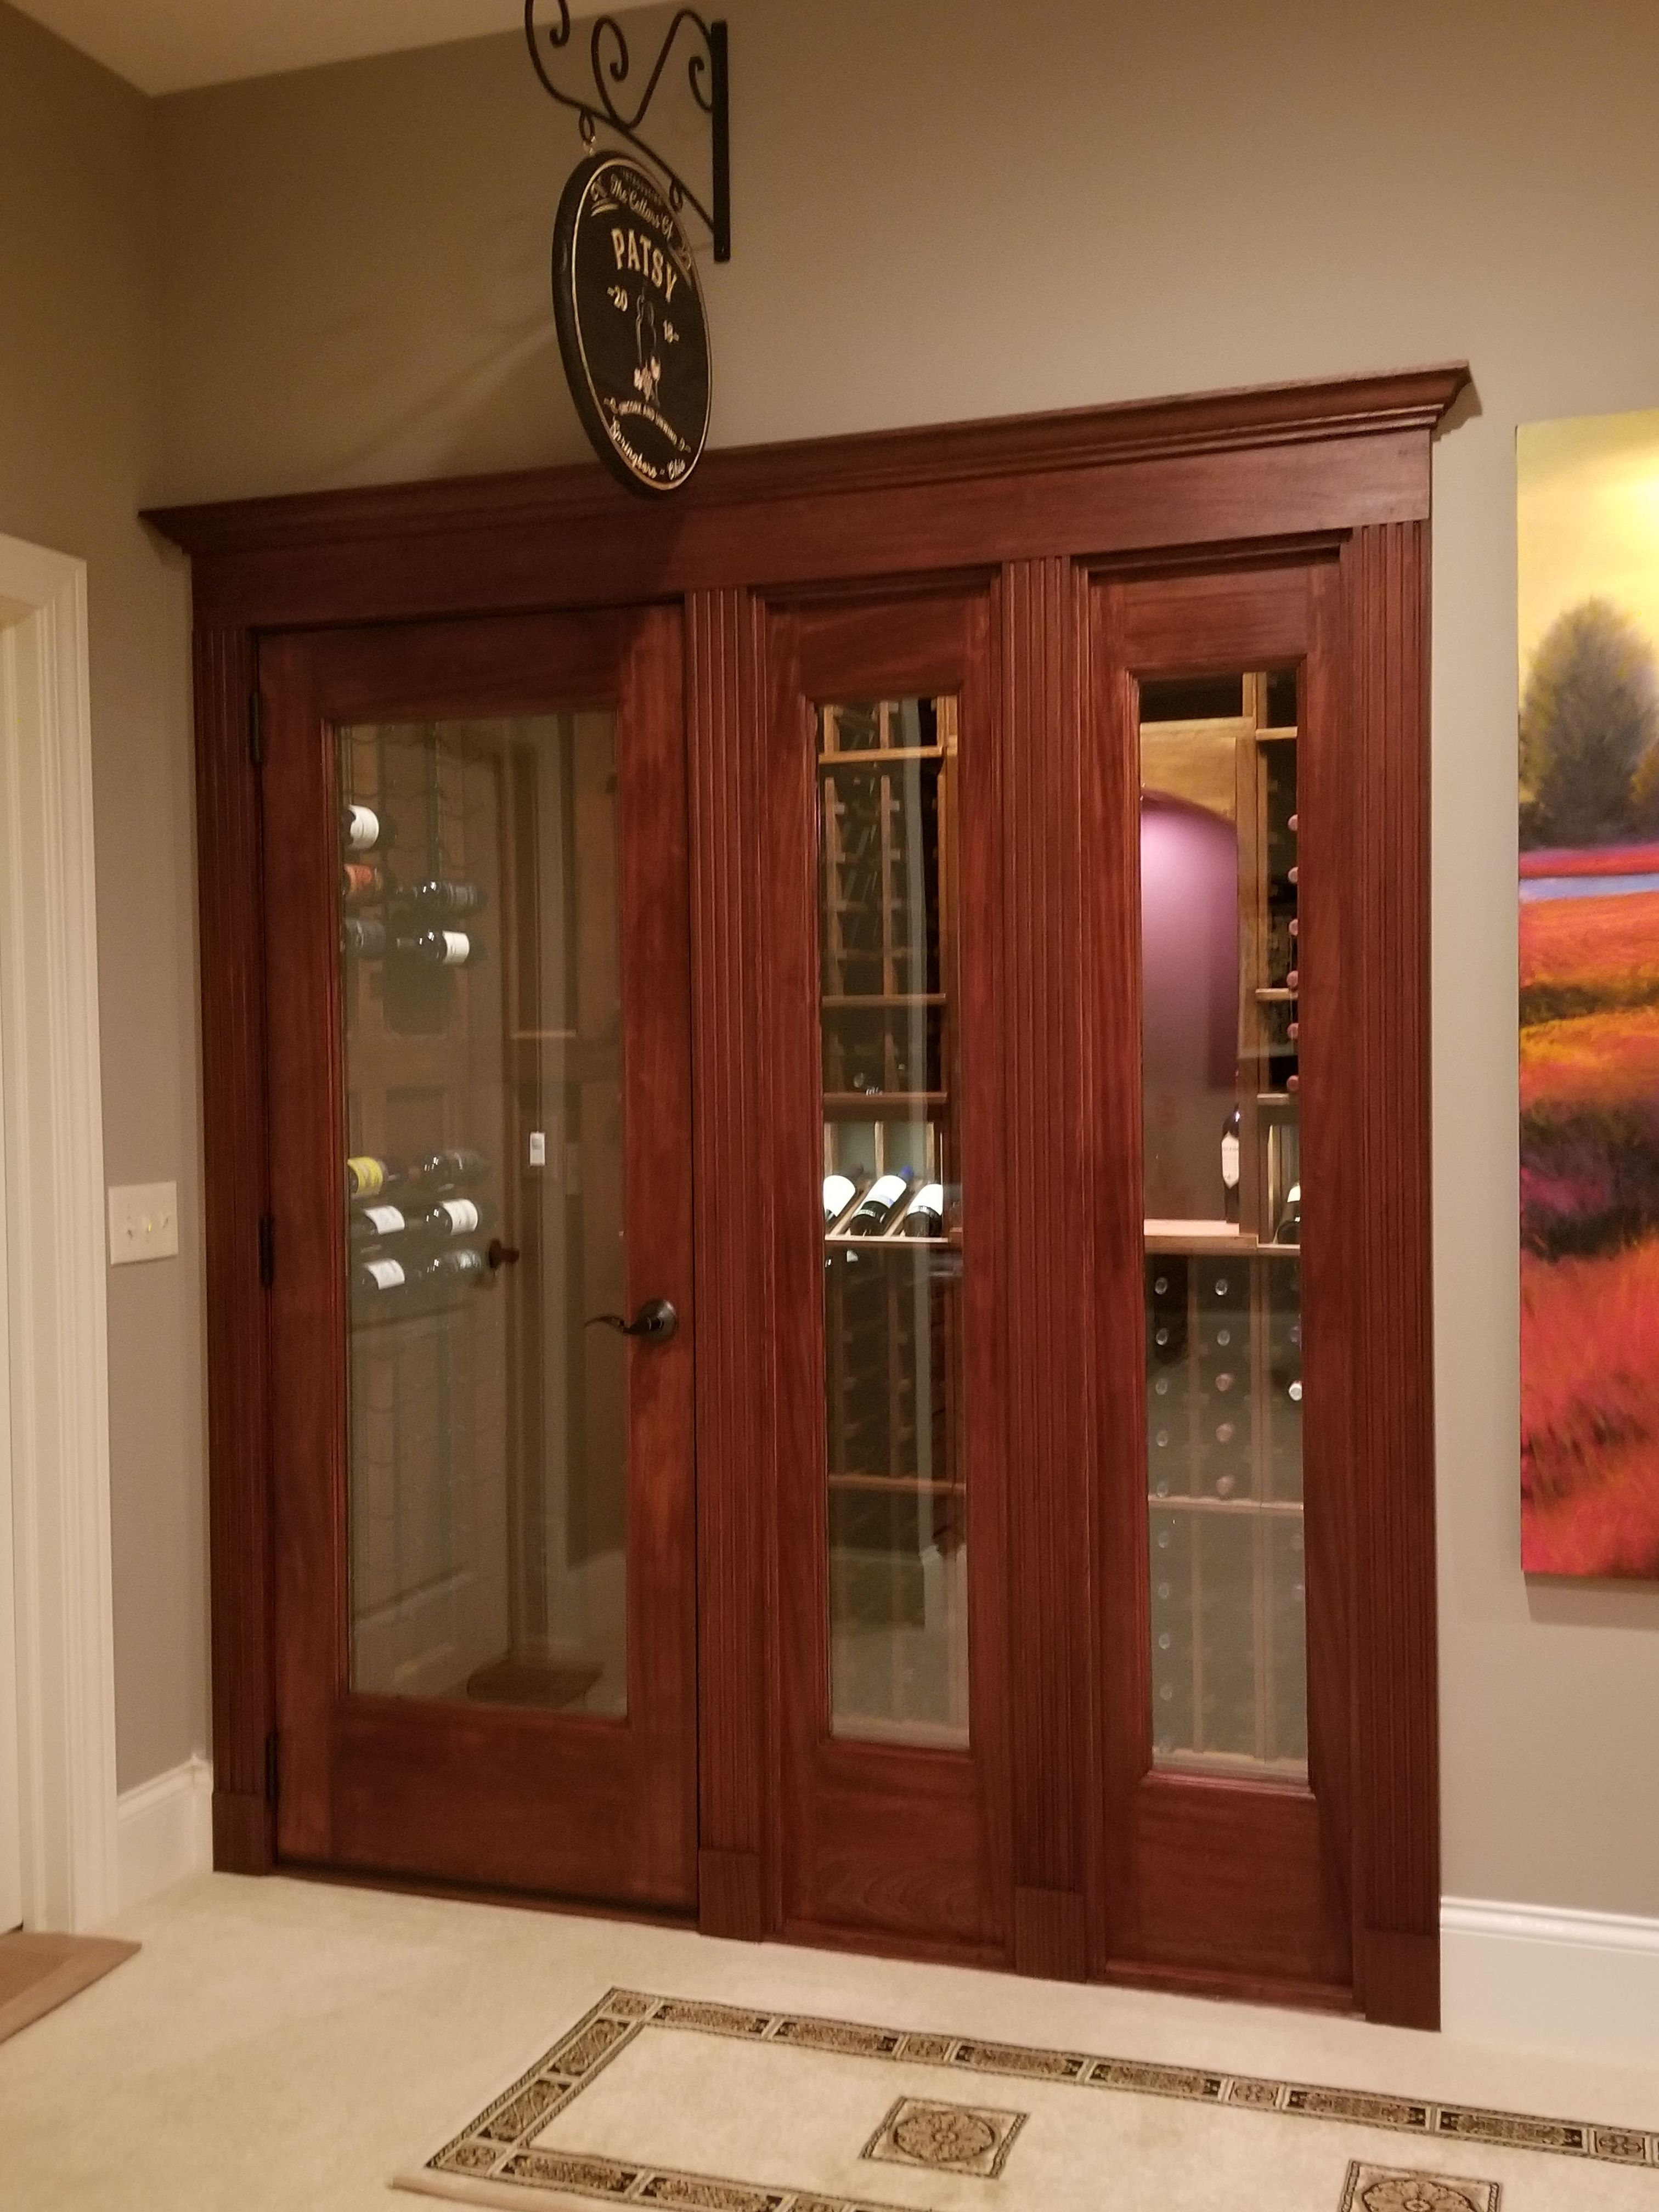 Vigilant full glass square door with sidelights and fluted casings